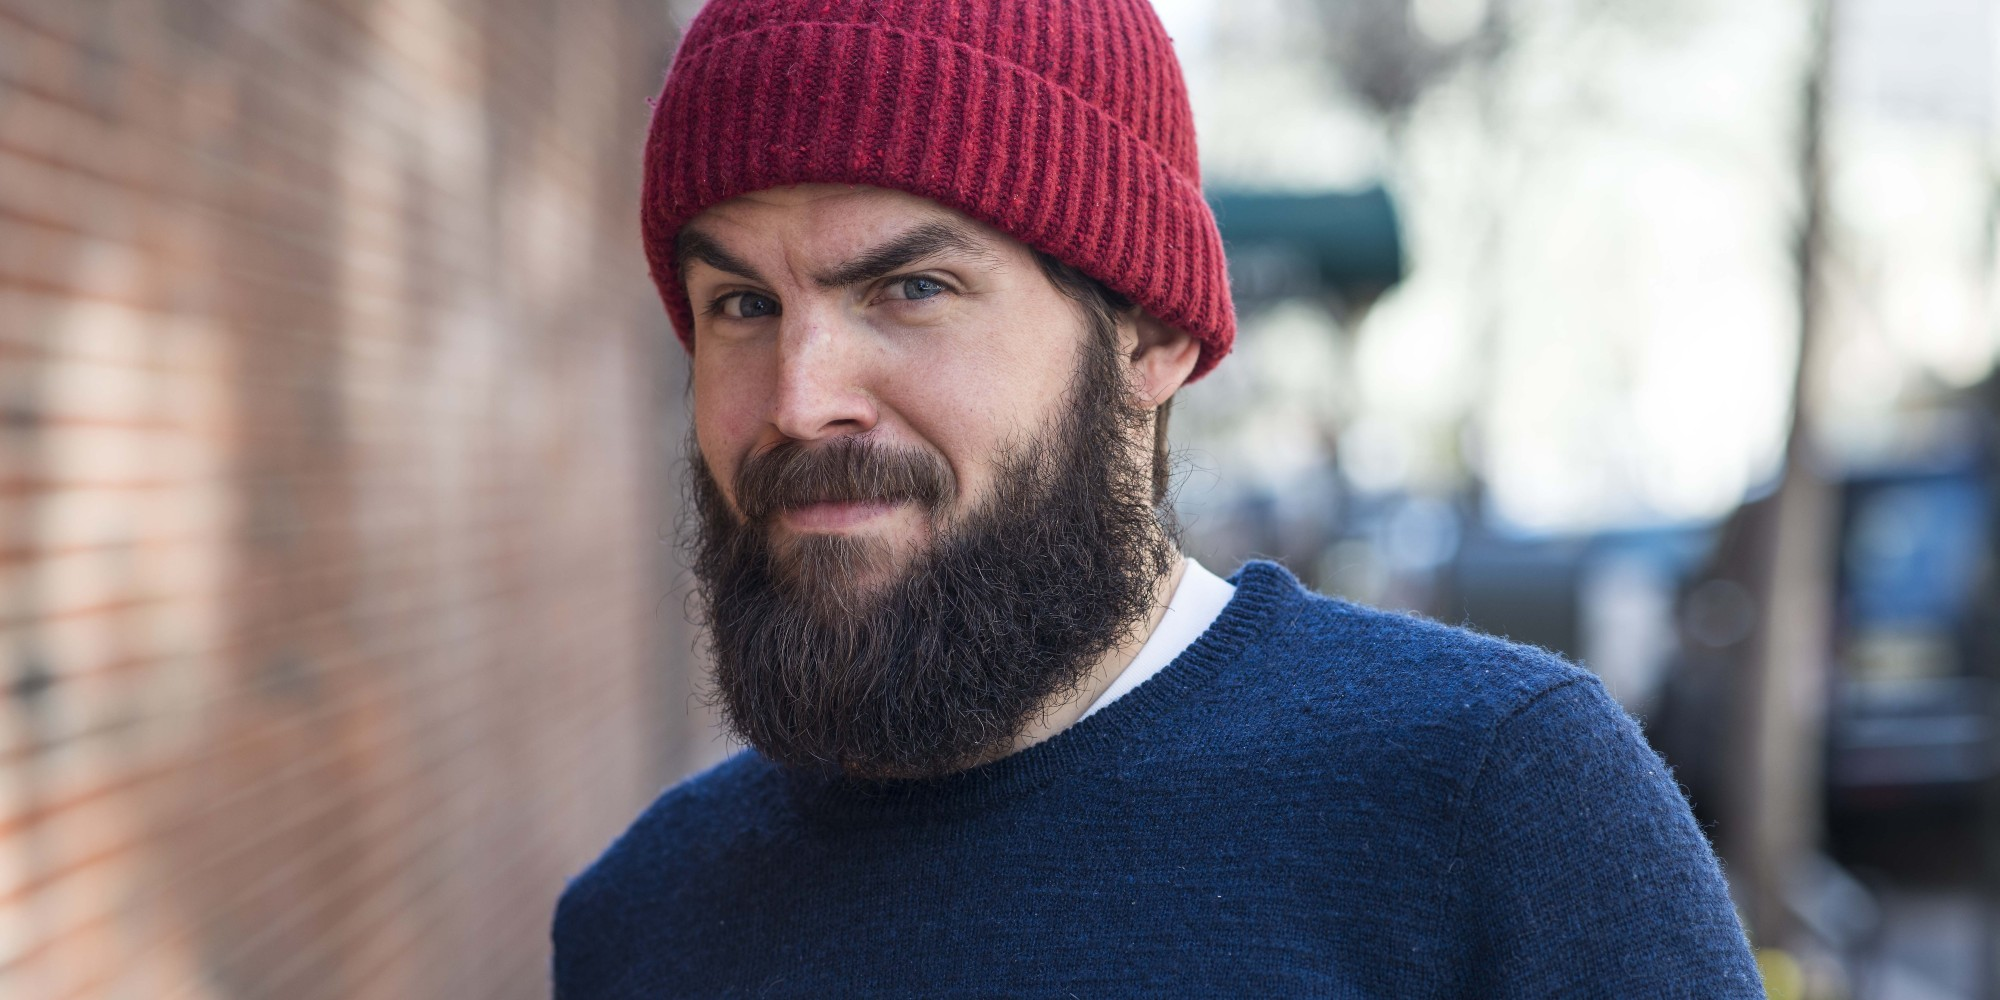 Weird Facial Hair Styles: New Beard Study Suggests Hipsters Should Think Twice About